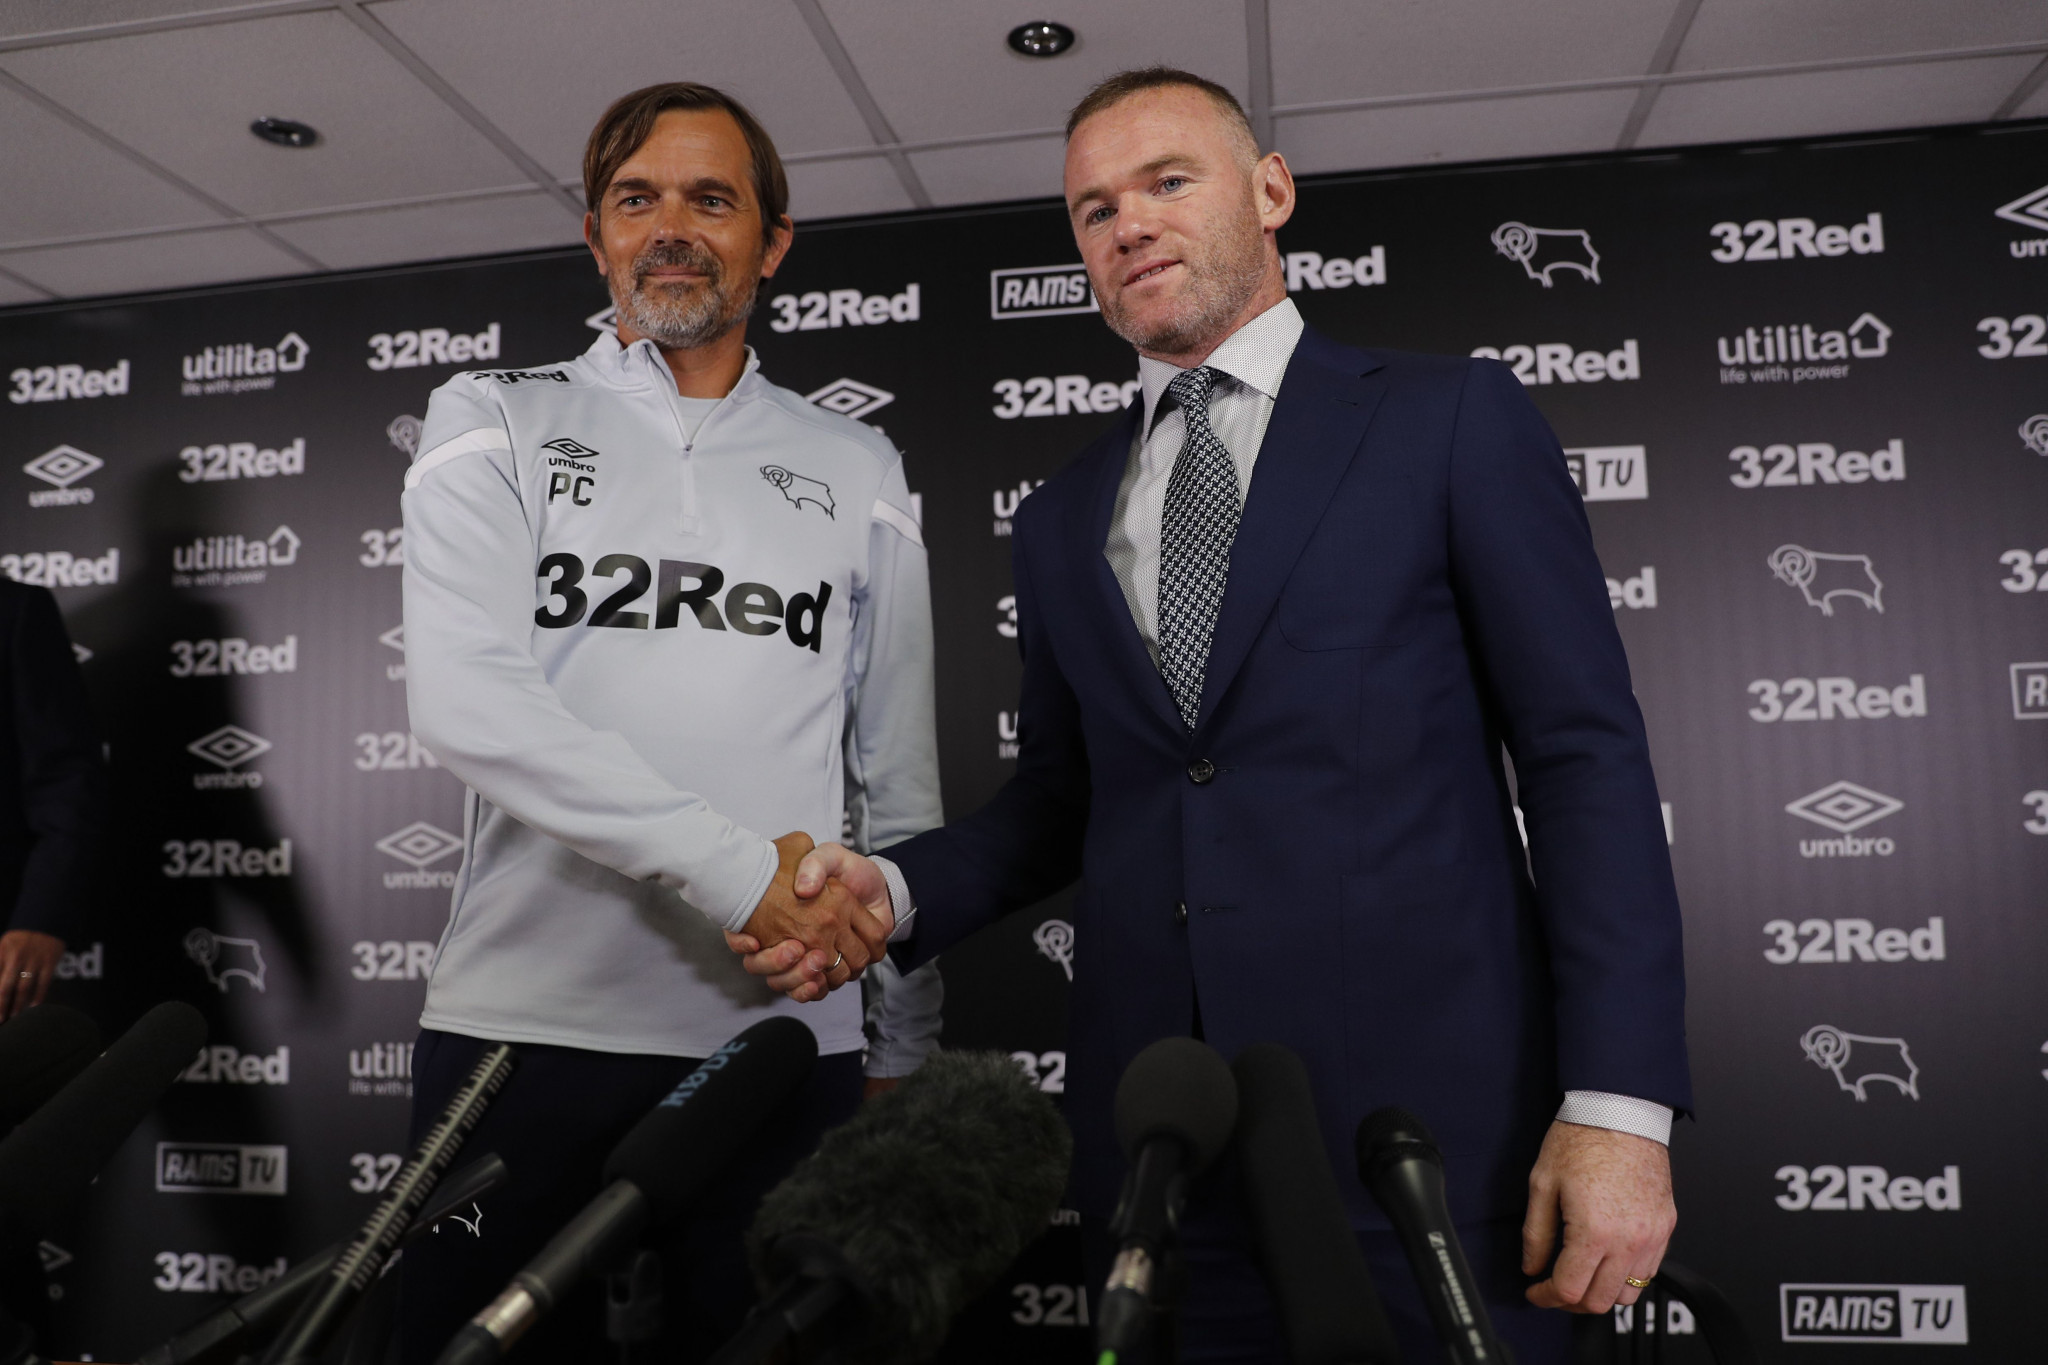 Phillip Cocu, left, shakes hands with new signing Wayne Rooney, who will controversially wear number 32 ©Getty Images